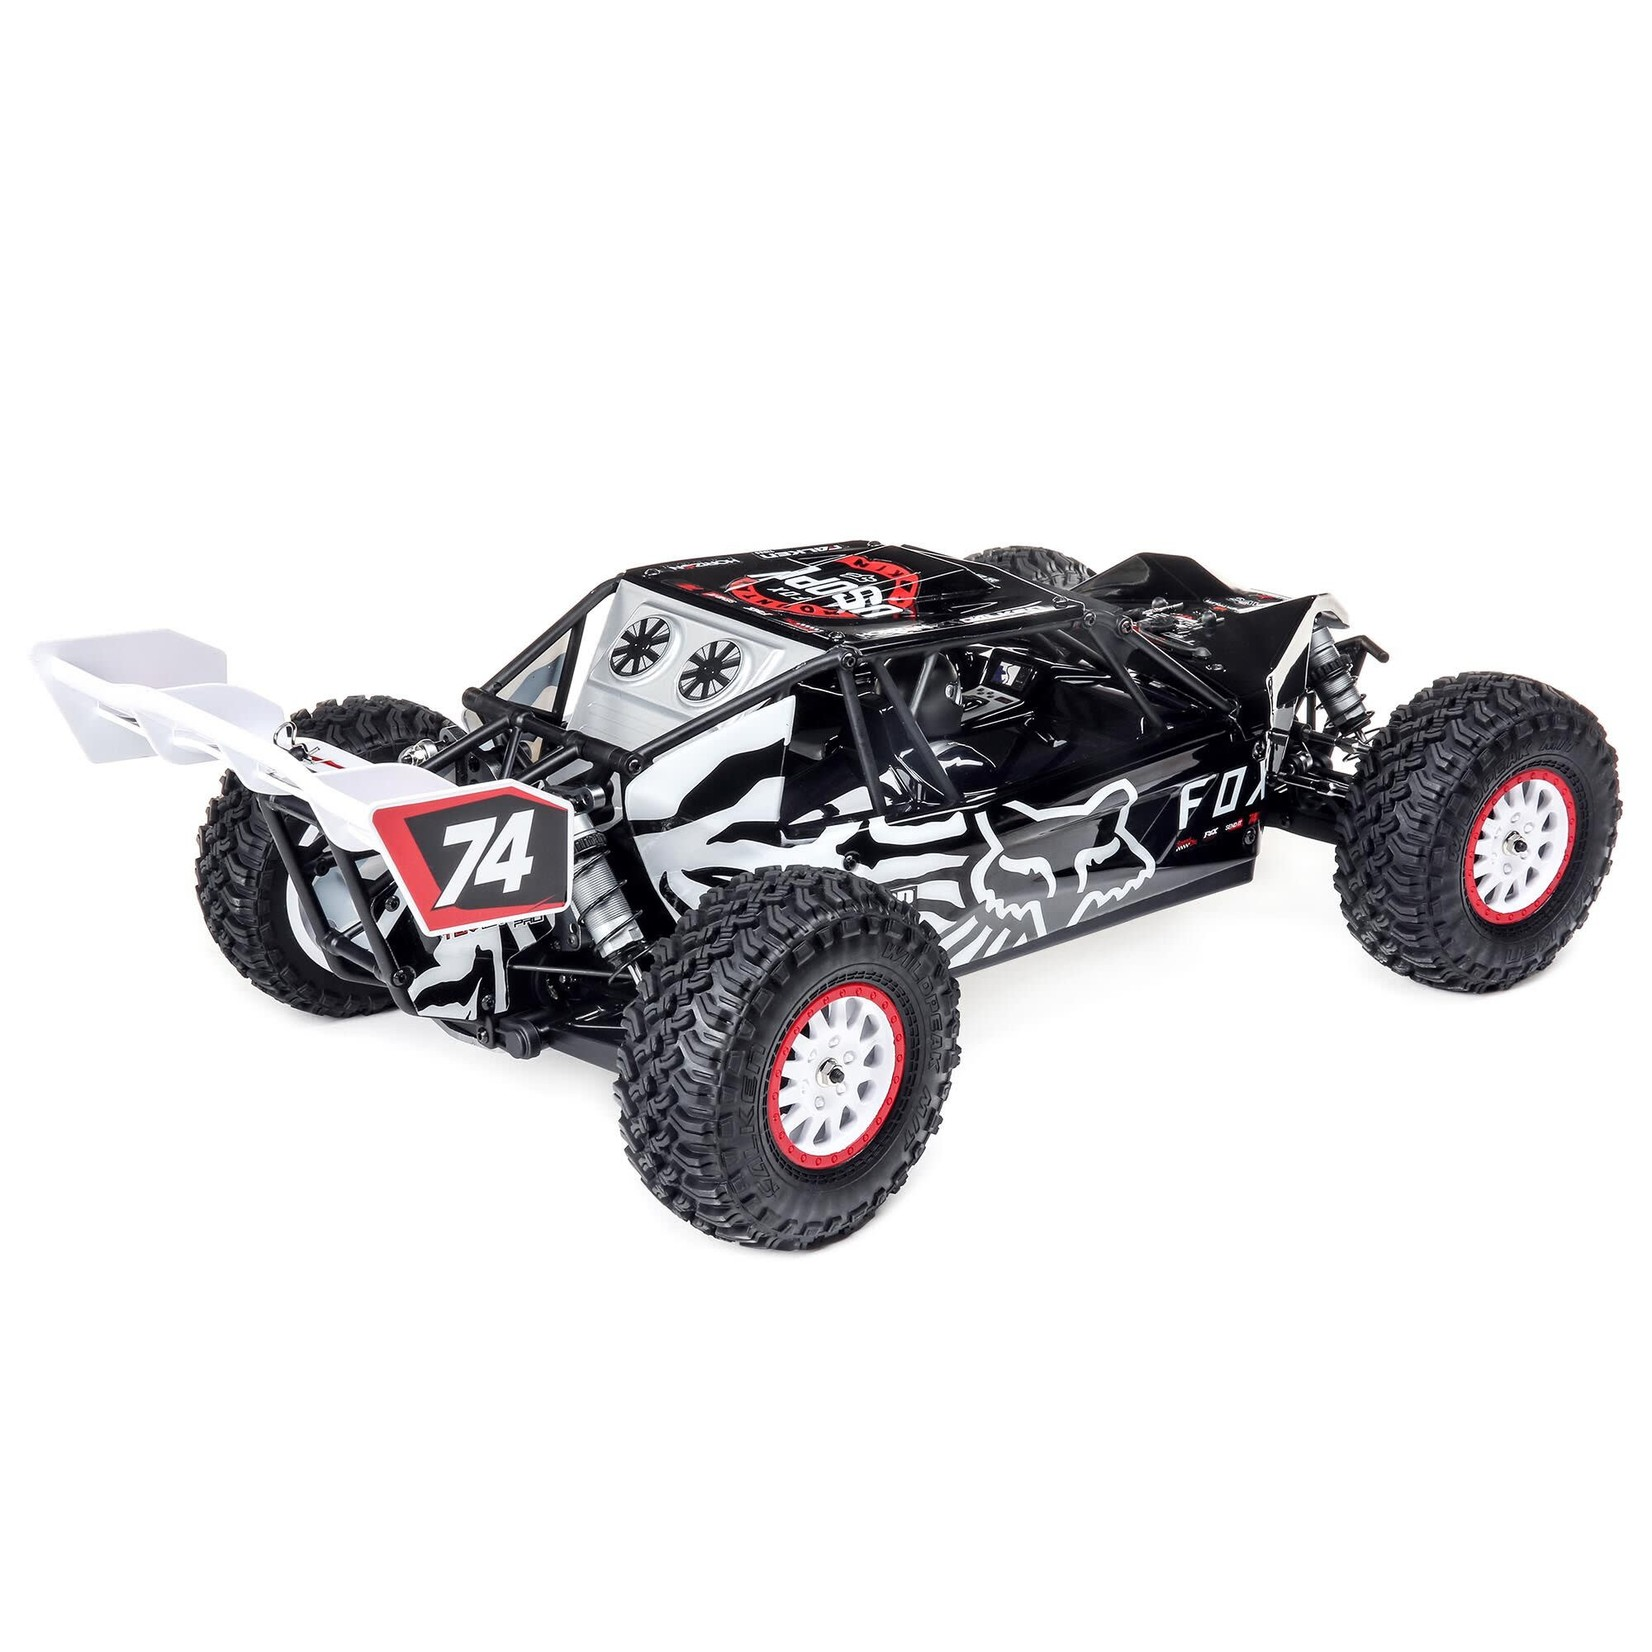 Losi LOS03027 Losi Tenacity DB Pro, 4WD Desert Buggy Brushless RTR with Smart